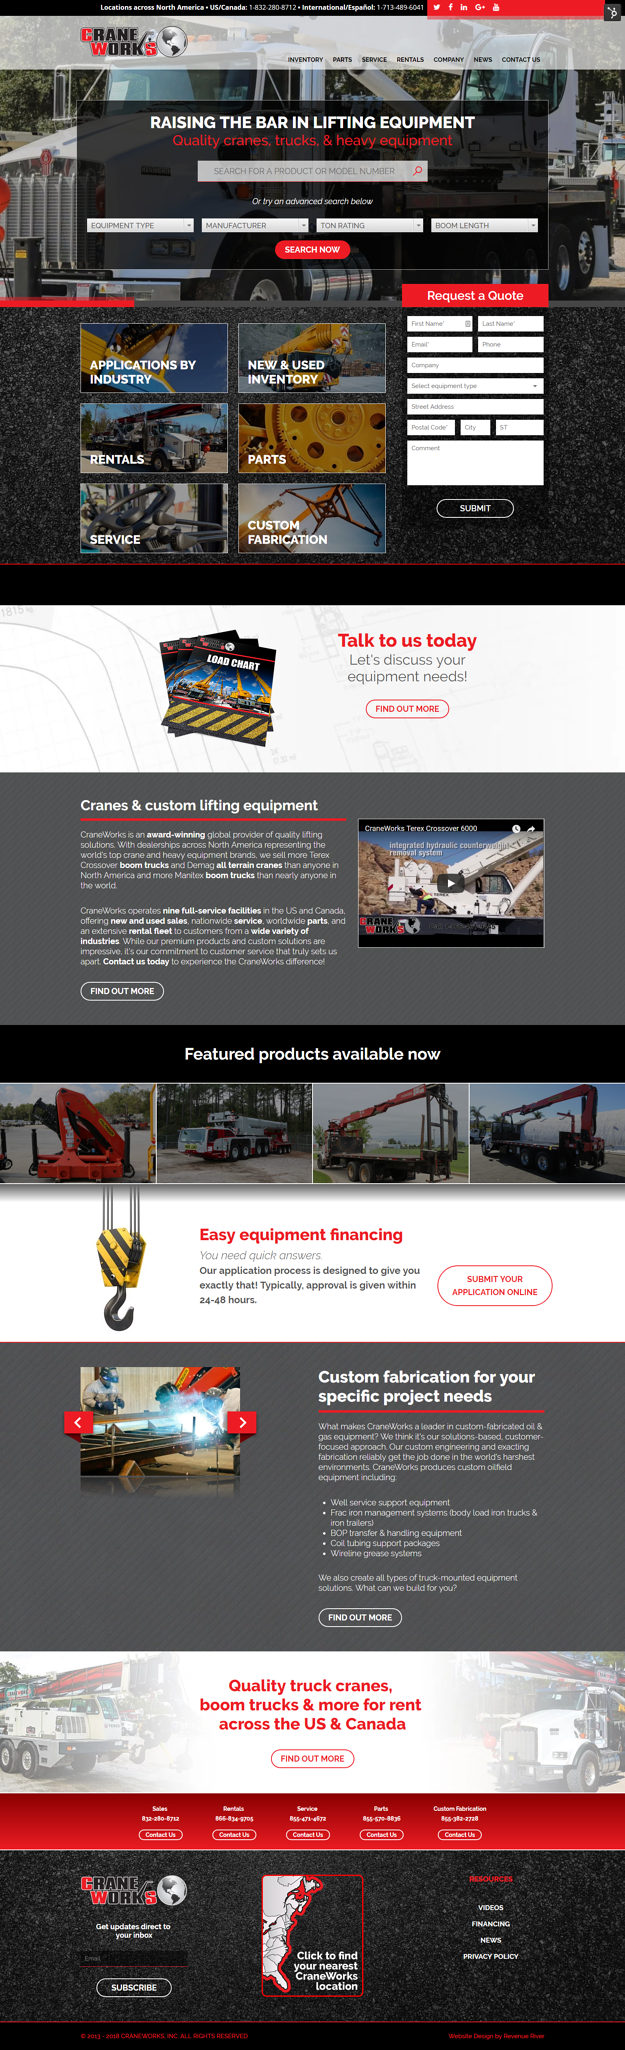 CraneWorks new homepage